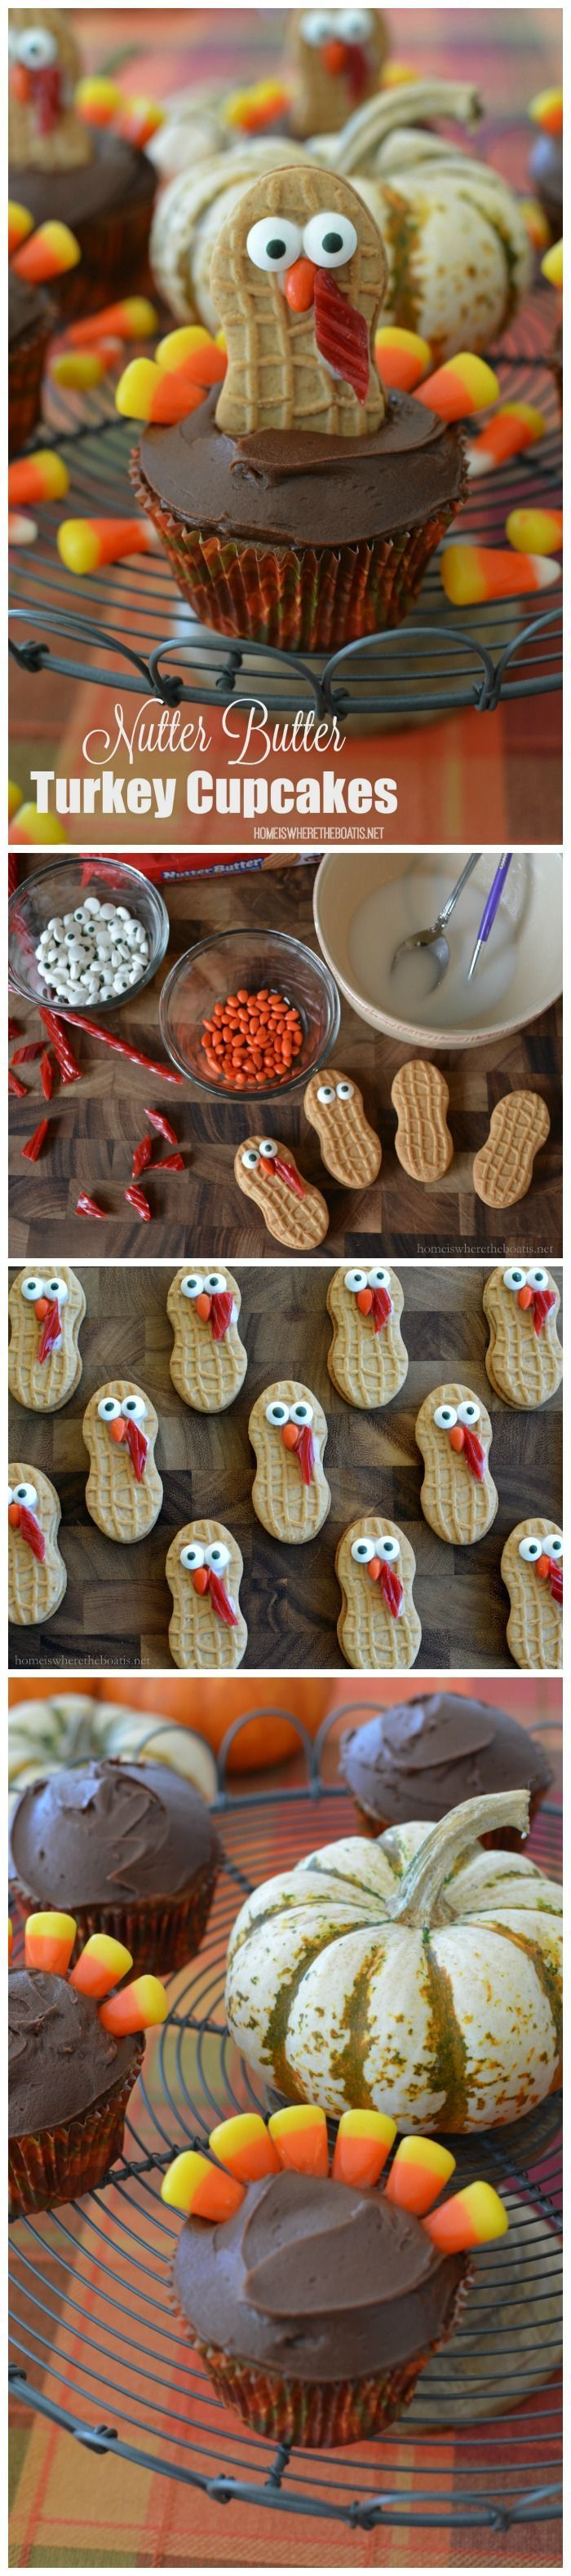 317 best Fall Thanksgiving images on Pinterest